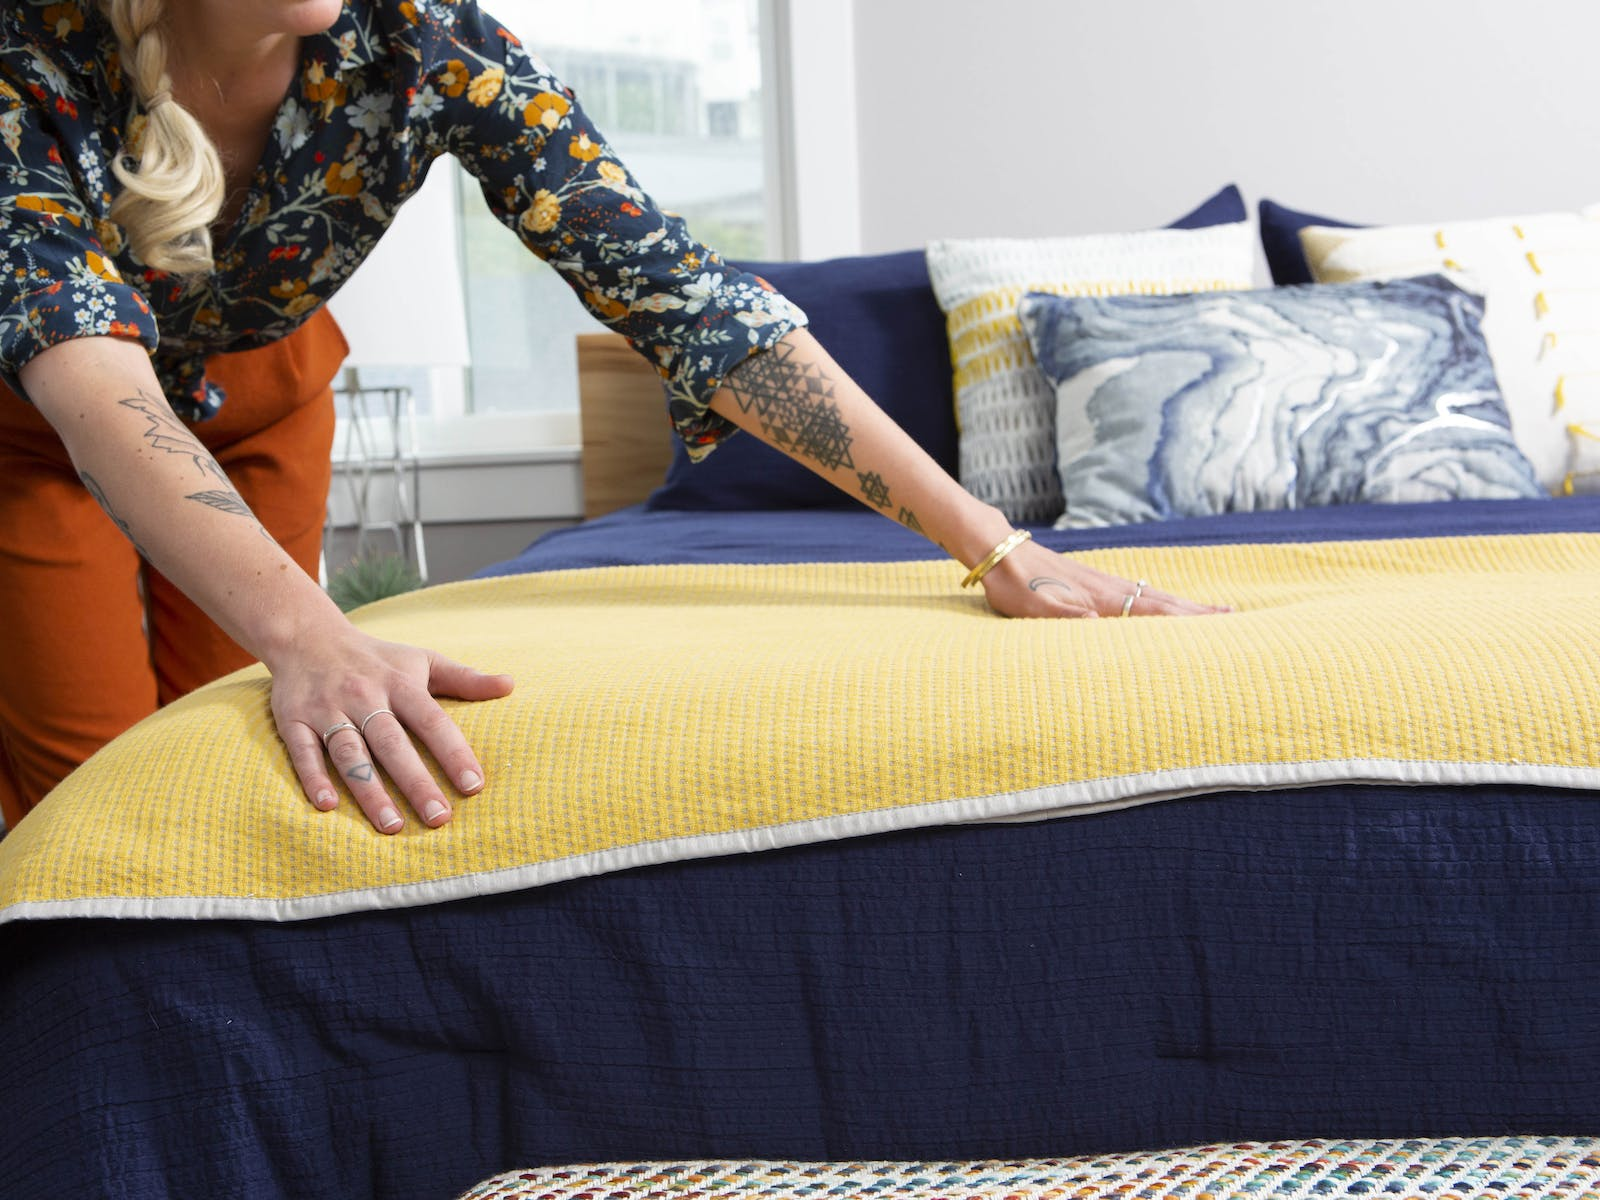 Woman making bed in vacation rental